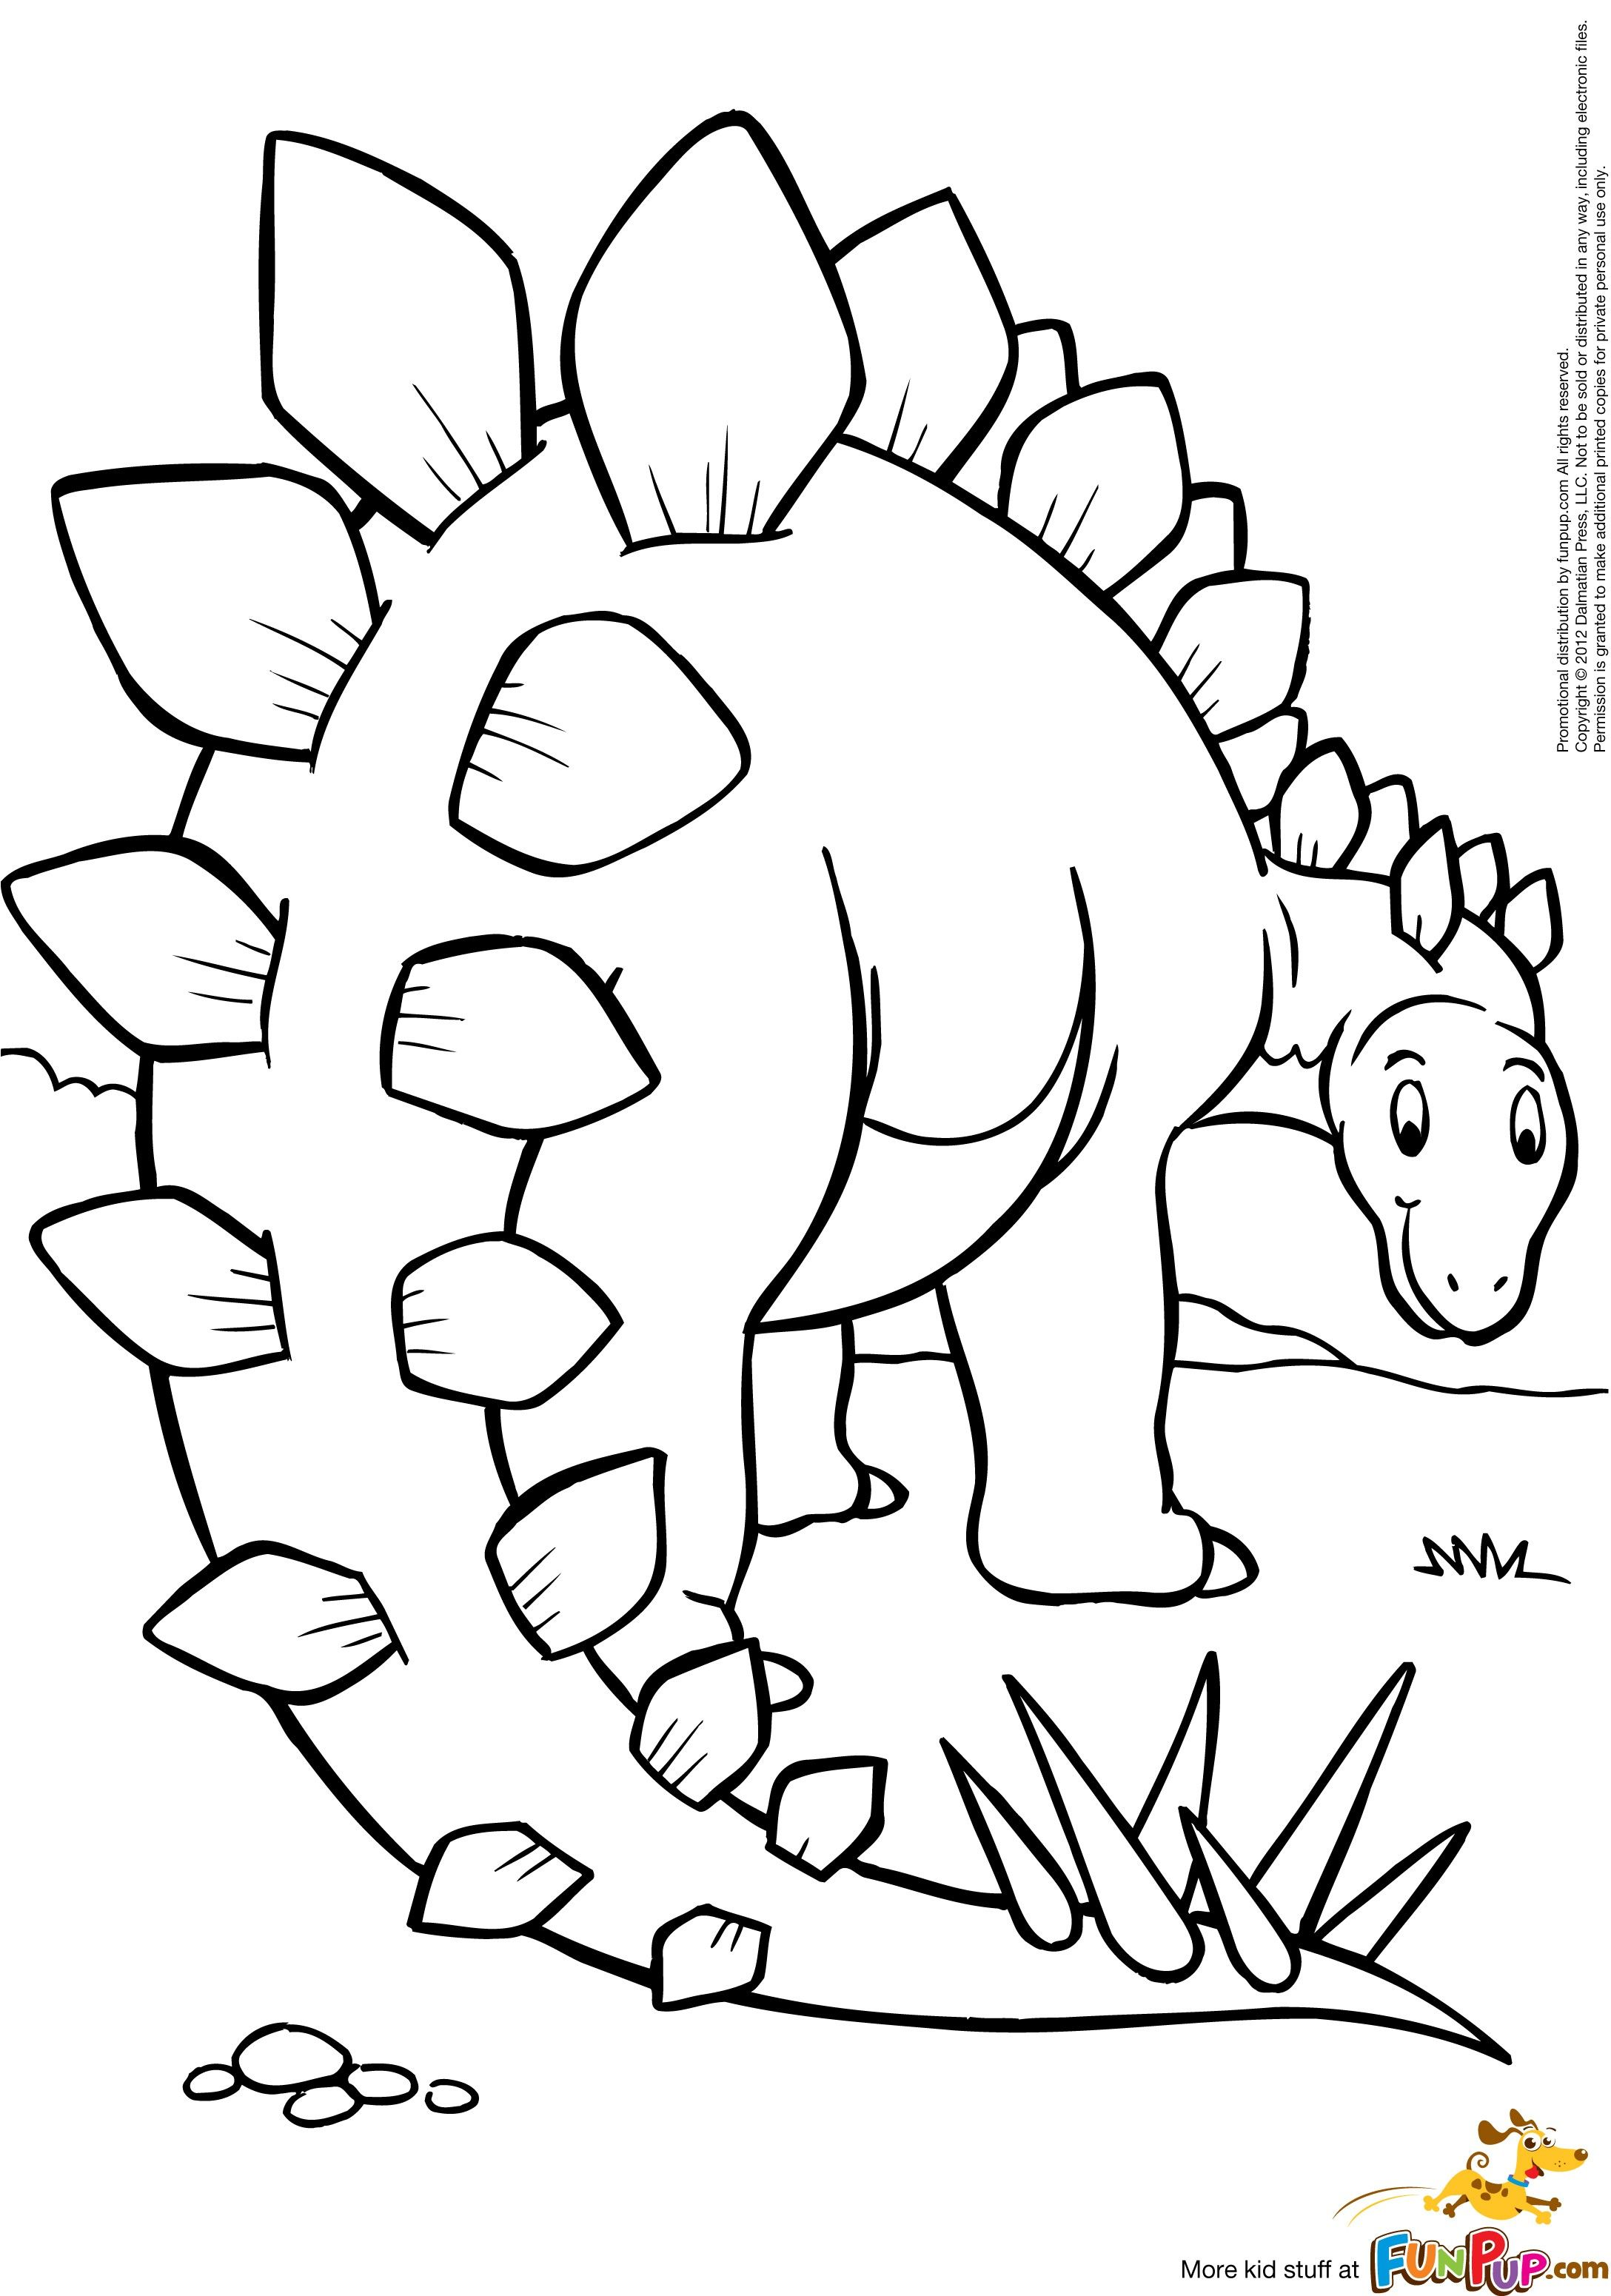 Stegosaurus 0 00 Coloring Pages Coloring Books